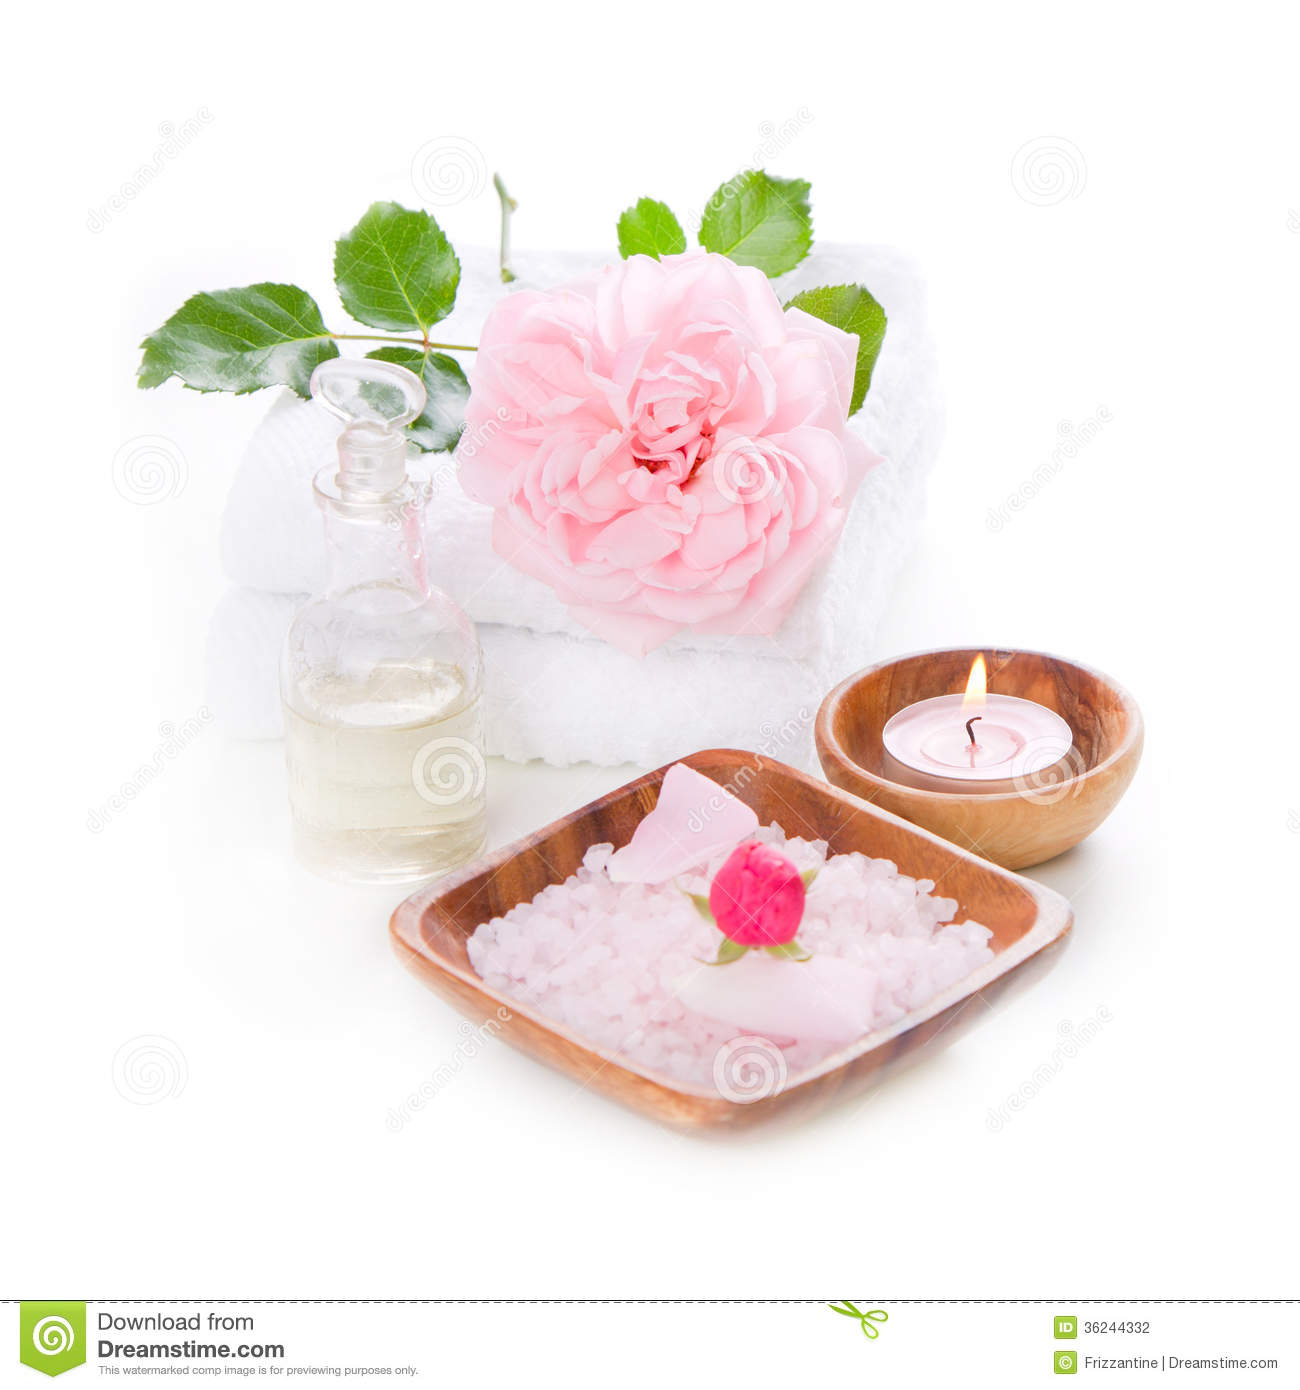 spa decoration set with pink rose stock photography - image: 36244332